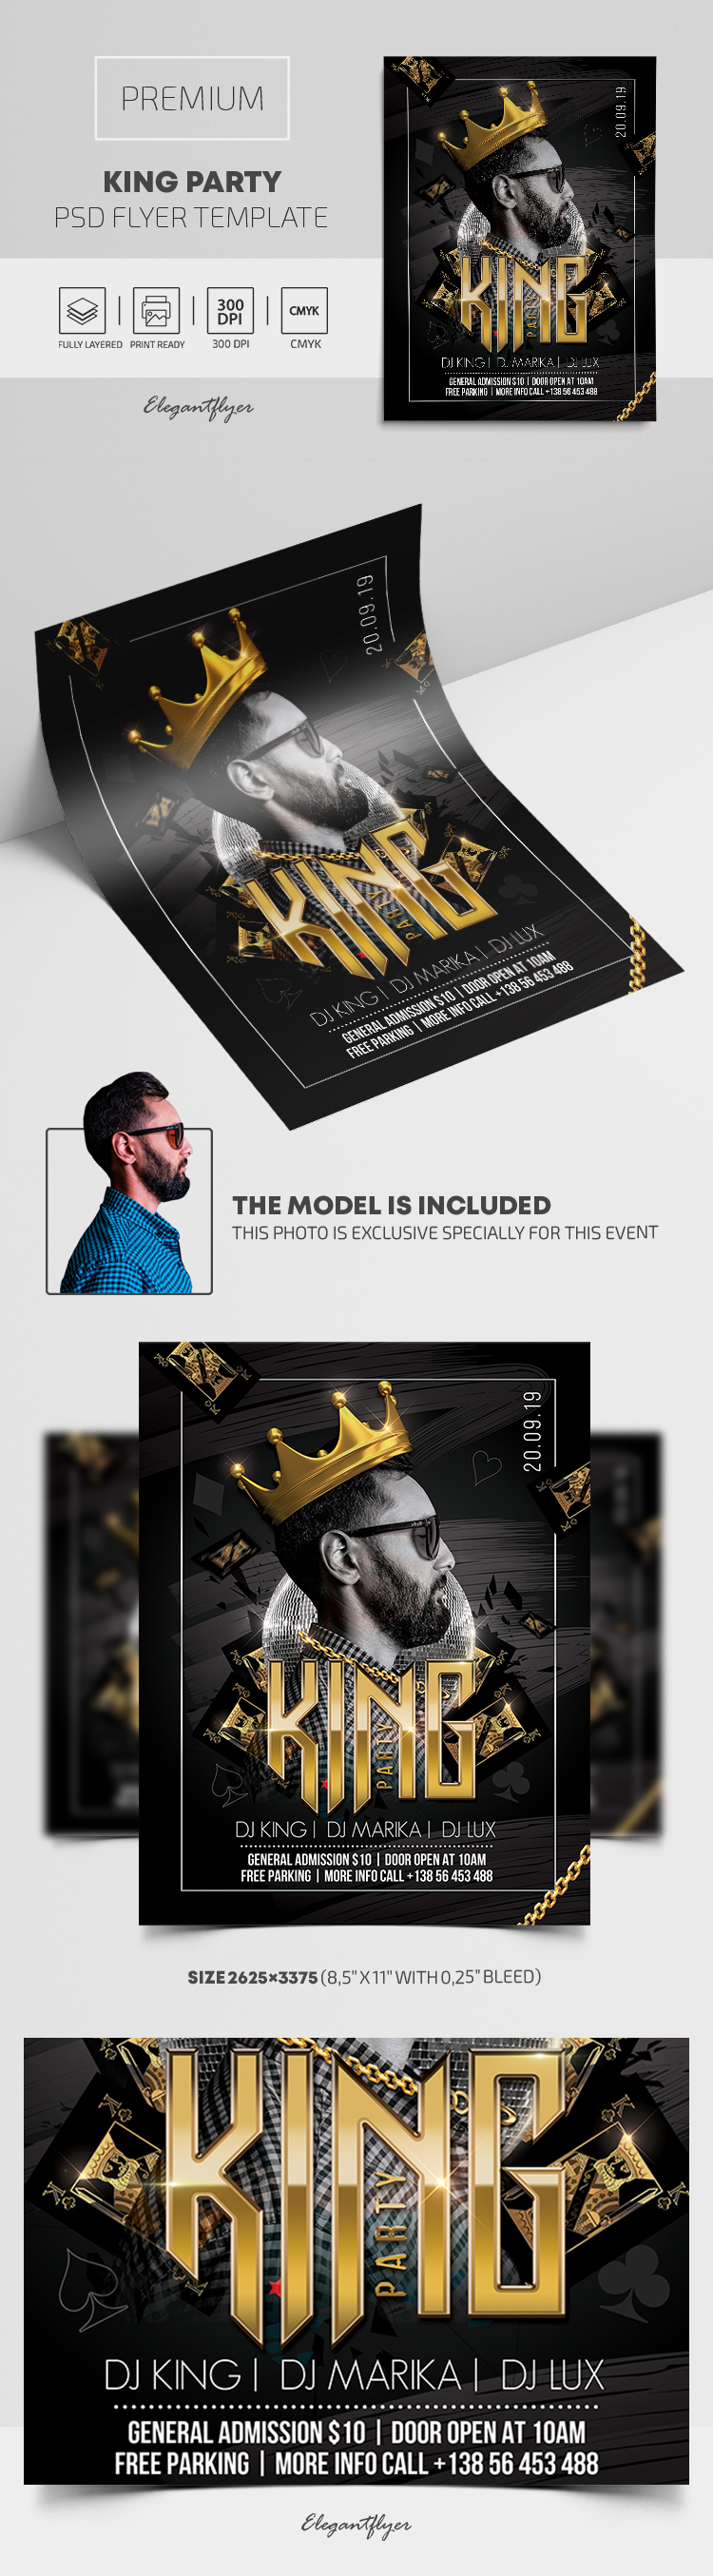 King Party – Premium PSD Flyer Template